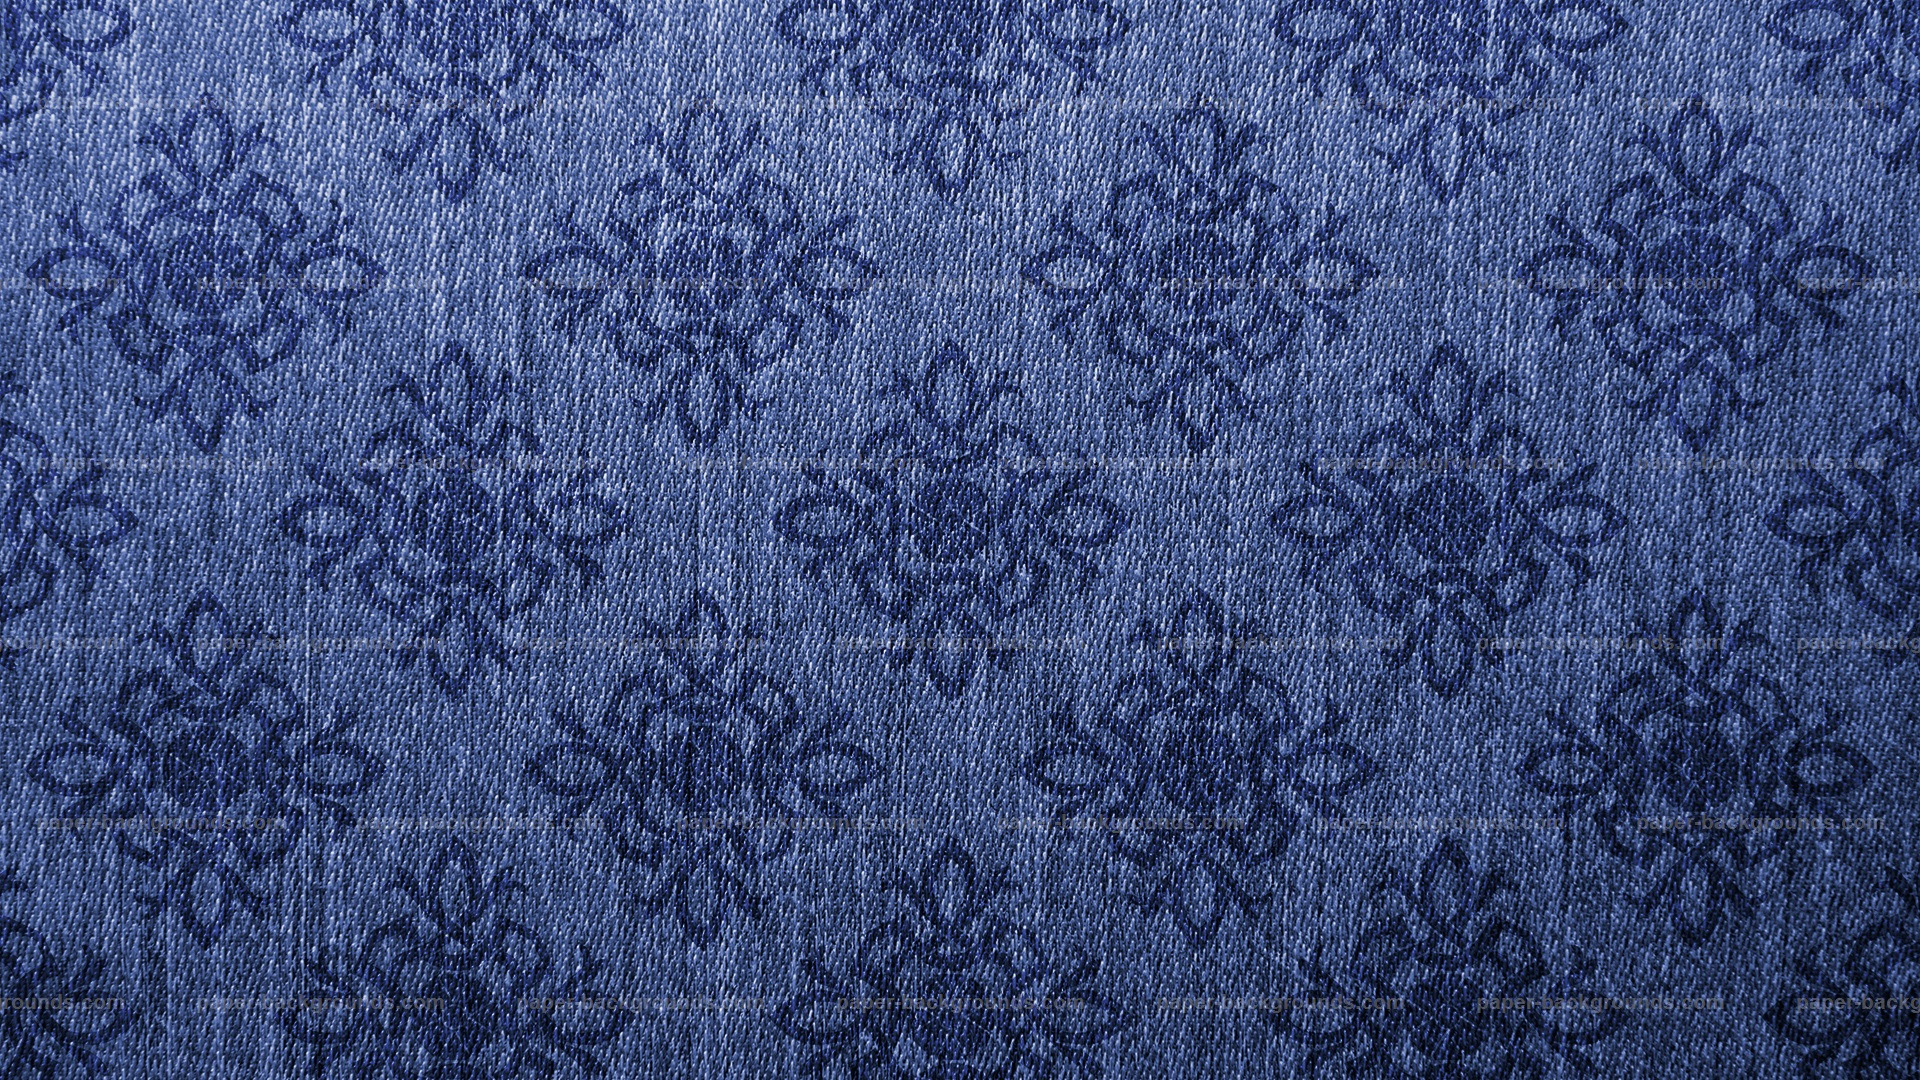 Damask Vintage Blue Canvas Texture Background HD